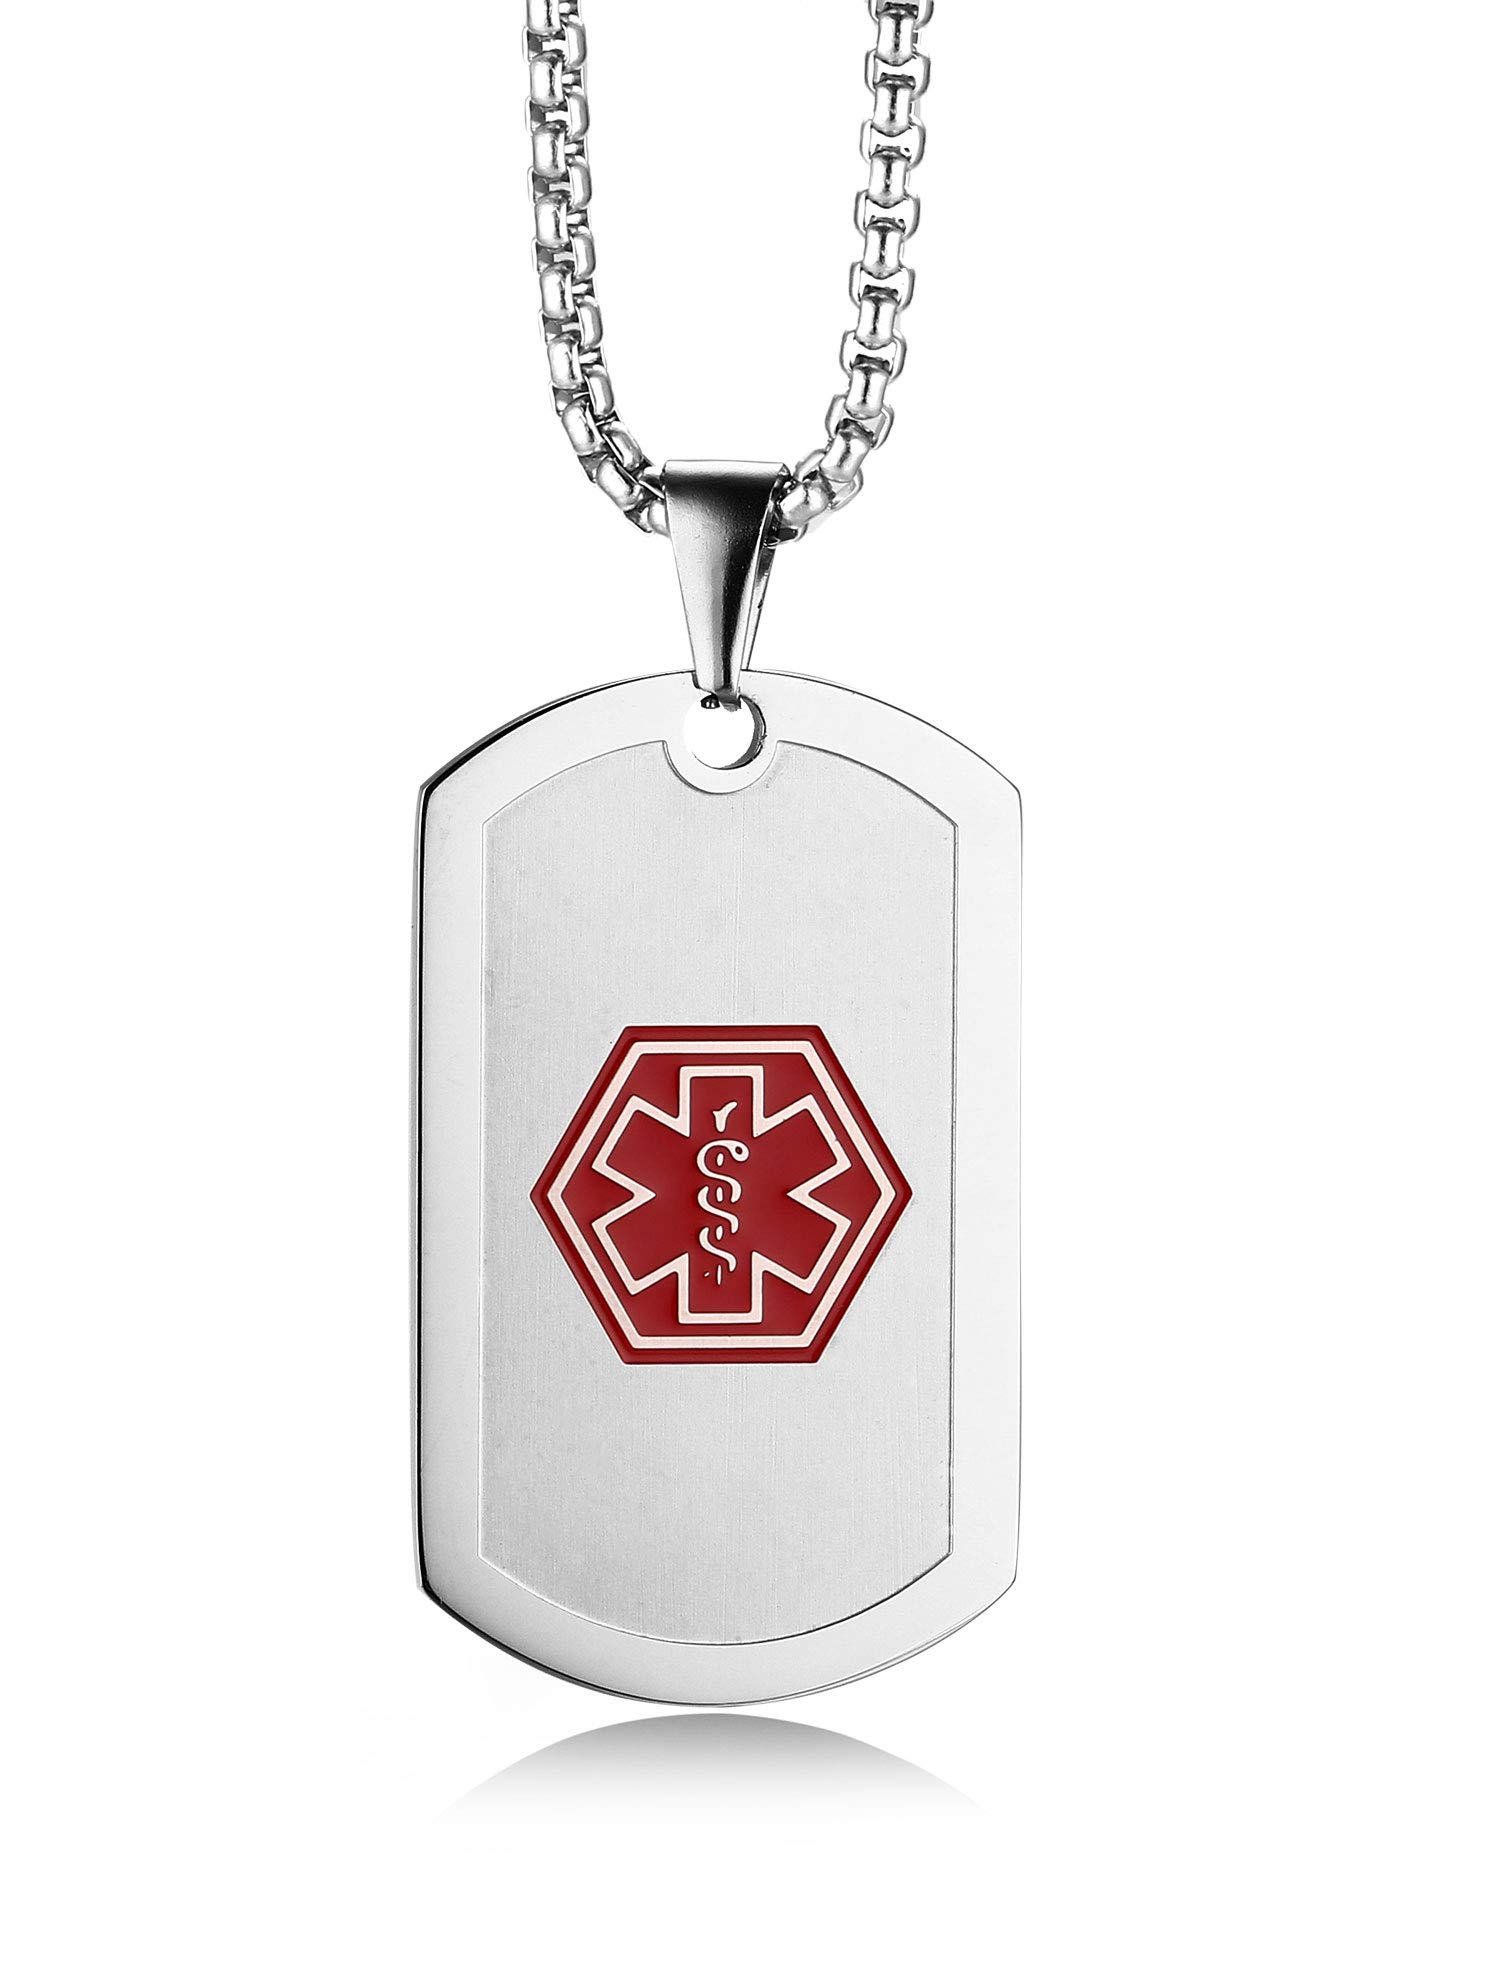 JF.JEWELRY Stainless Steel Medical ID Alert Tag Necklace for Men & Women 24 inches Free Engraving